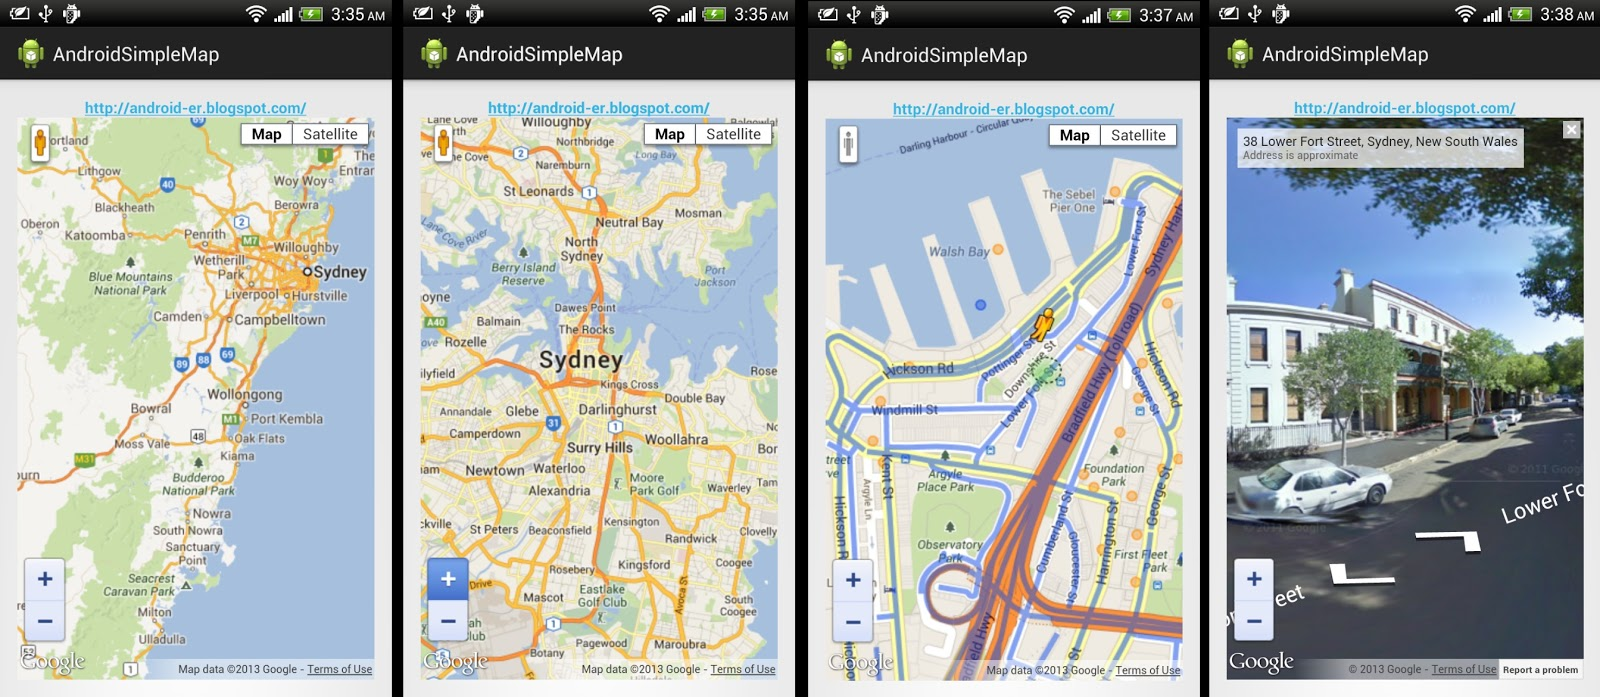 Android-er: Embed html using Google Maps JavaScript API v3 ... on google maps app for iphone, google docs android app, google hangouts android app, google maps apple, google maps home, google maps technology, google maps web, google maps amazon, google maps tablet, google tv android app, google maps keyboard, google play android app, google groups android app, google maps travel, google plus android app, google analytics app, google maps indoor map, google earth app, google maps books, app store app,